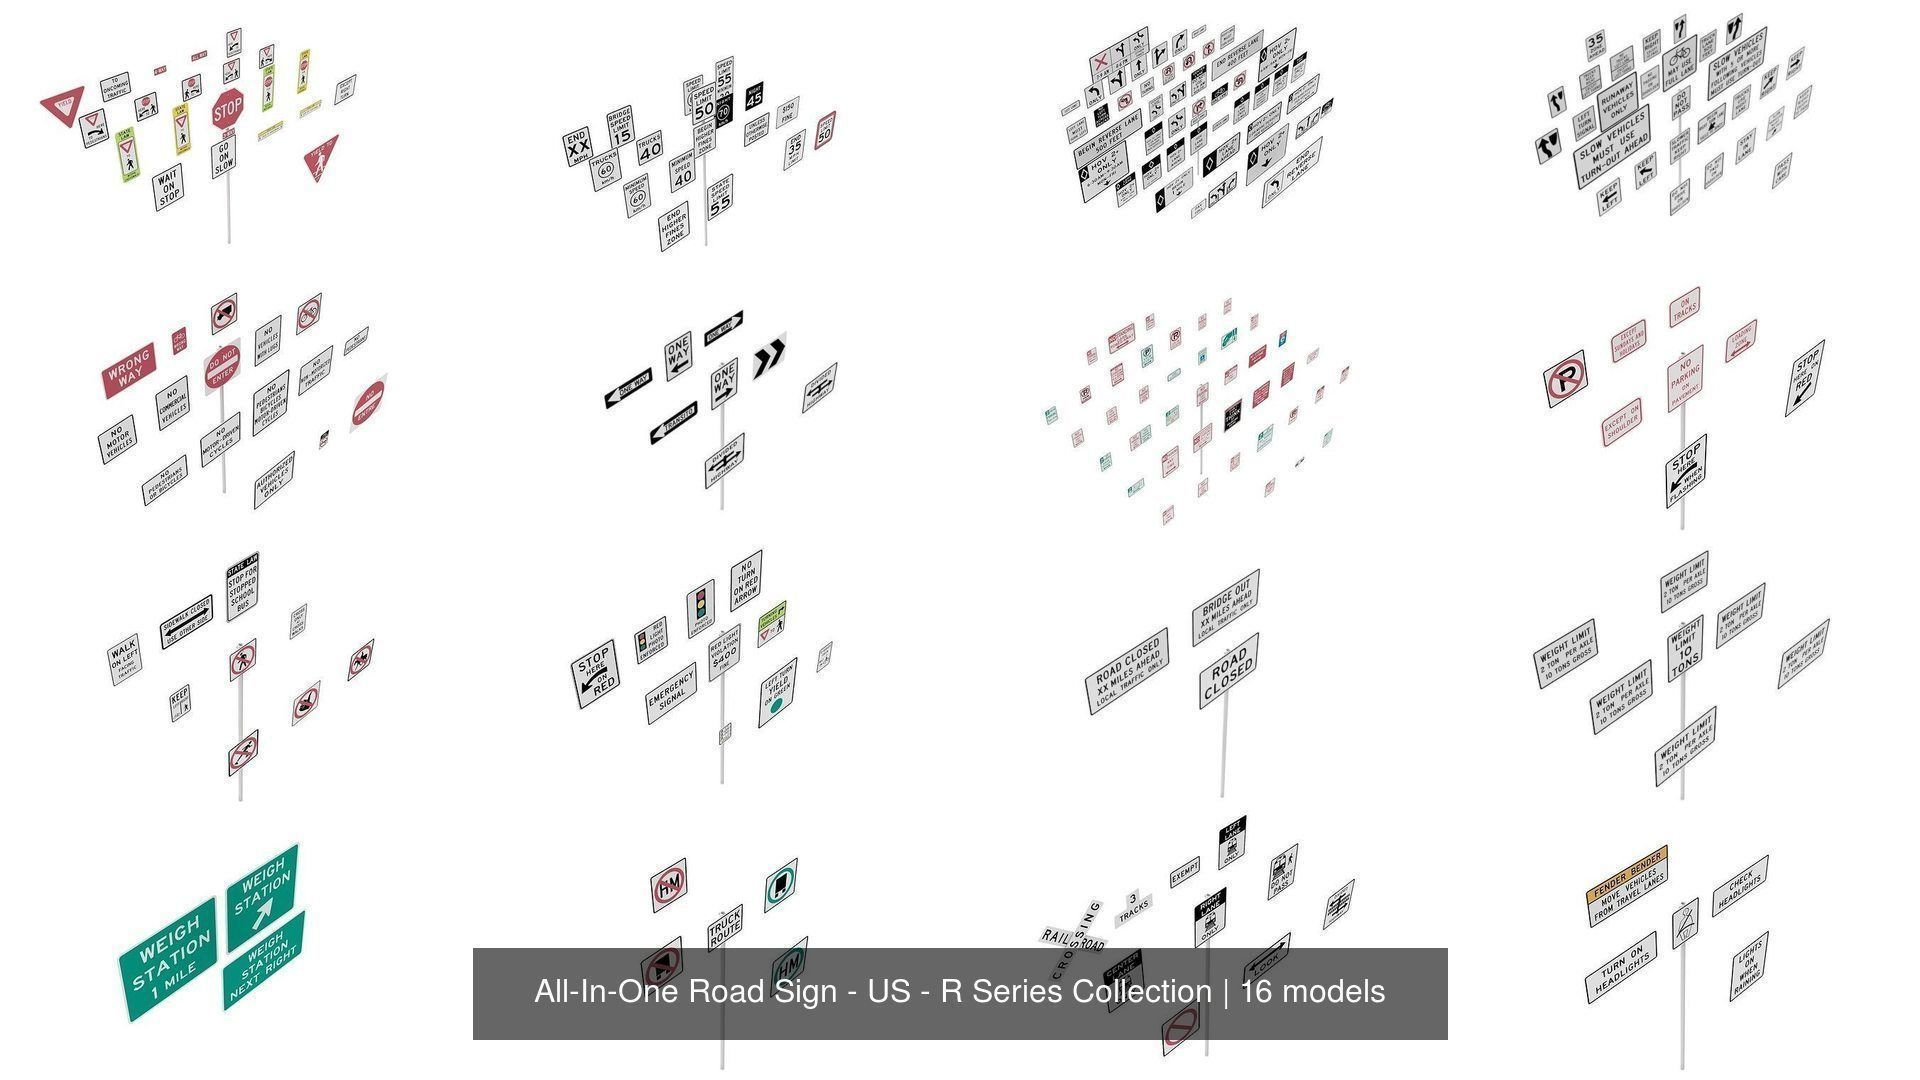 All-In-One Road Sign - US - R Series BIM Collection